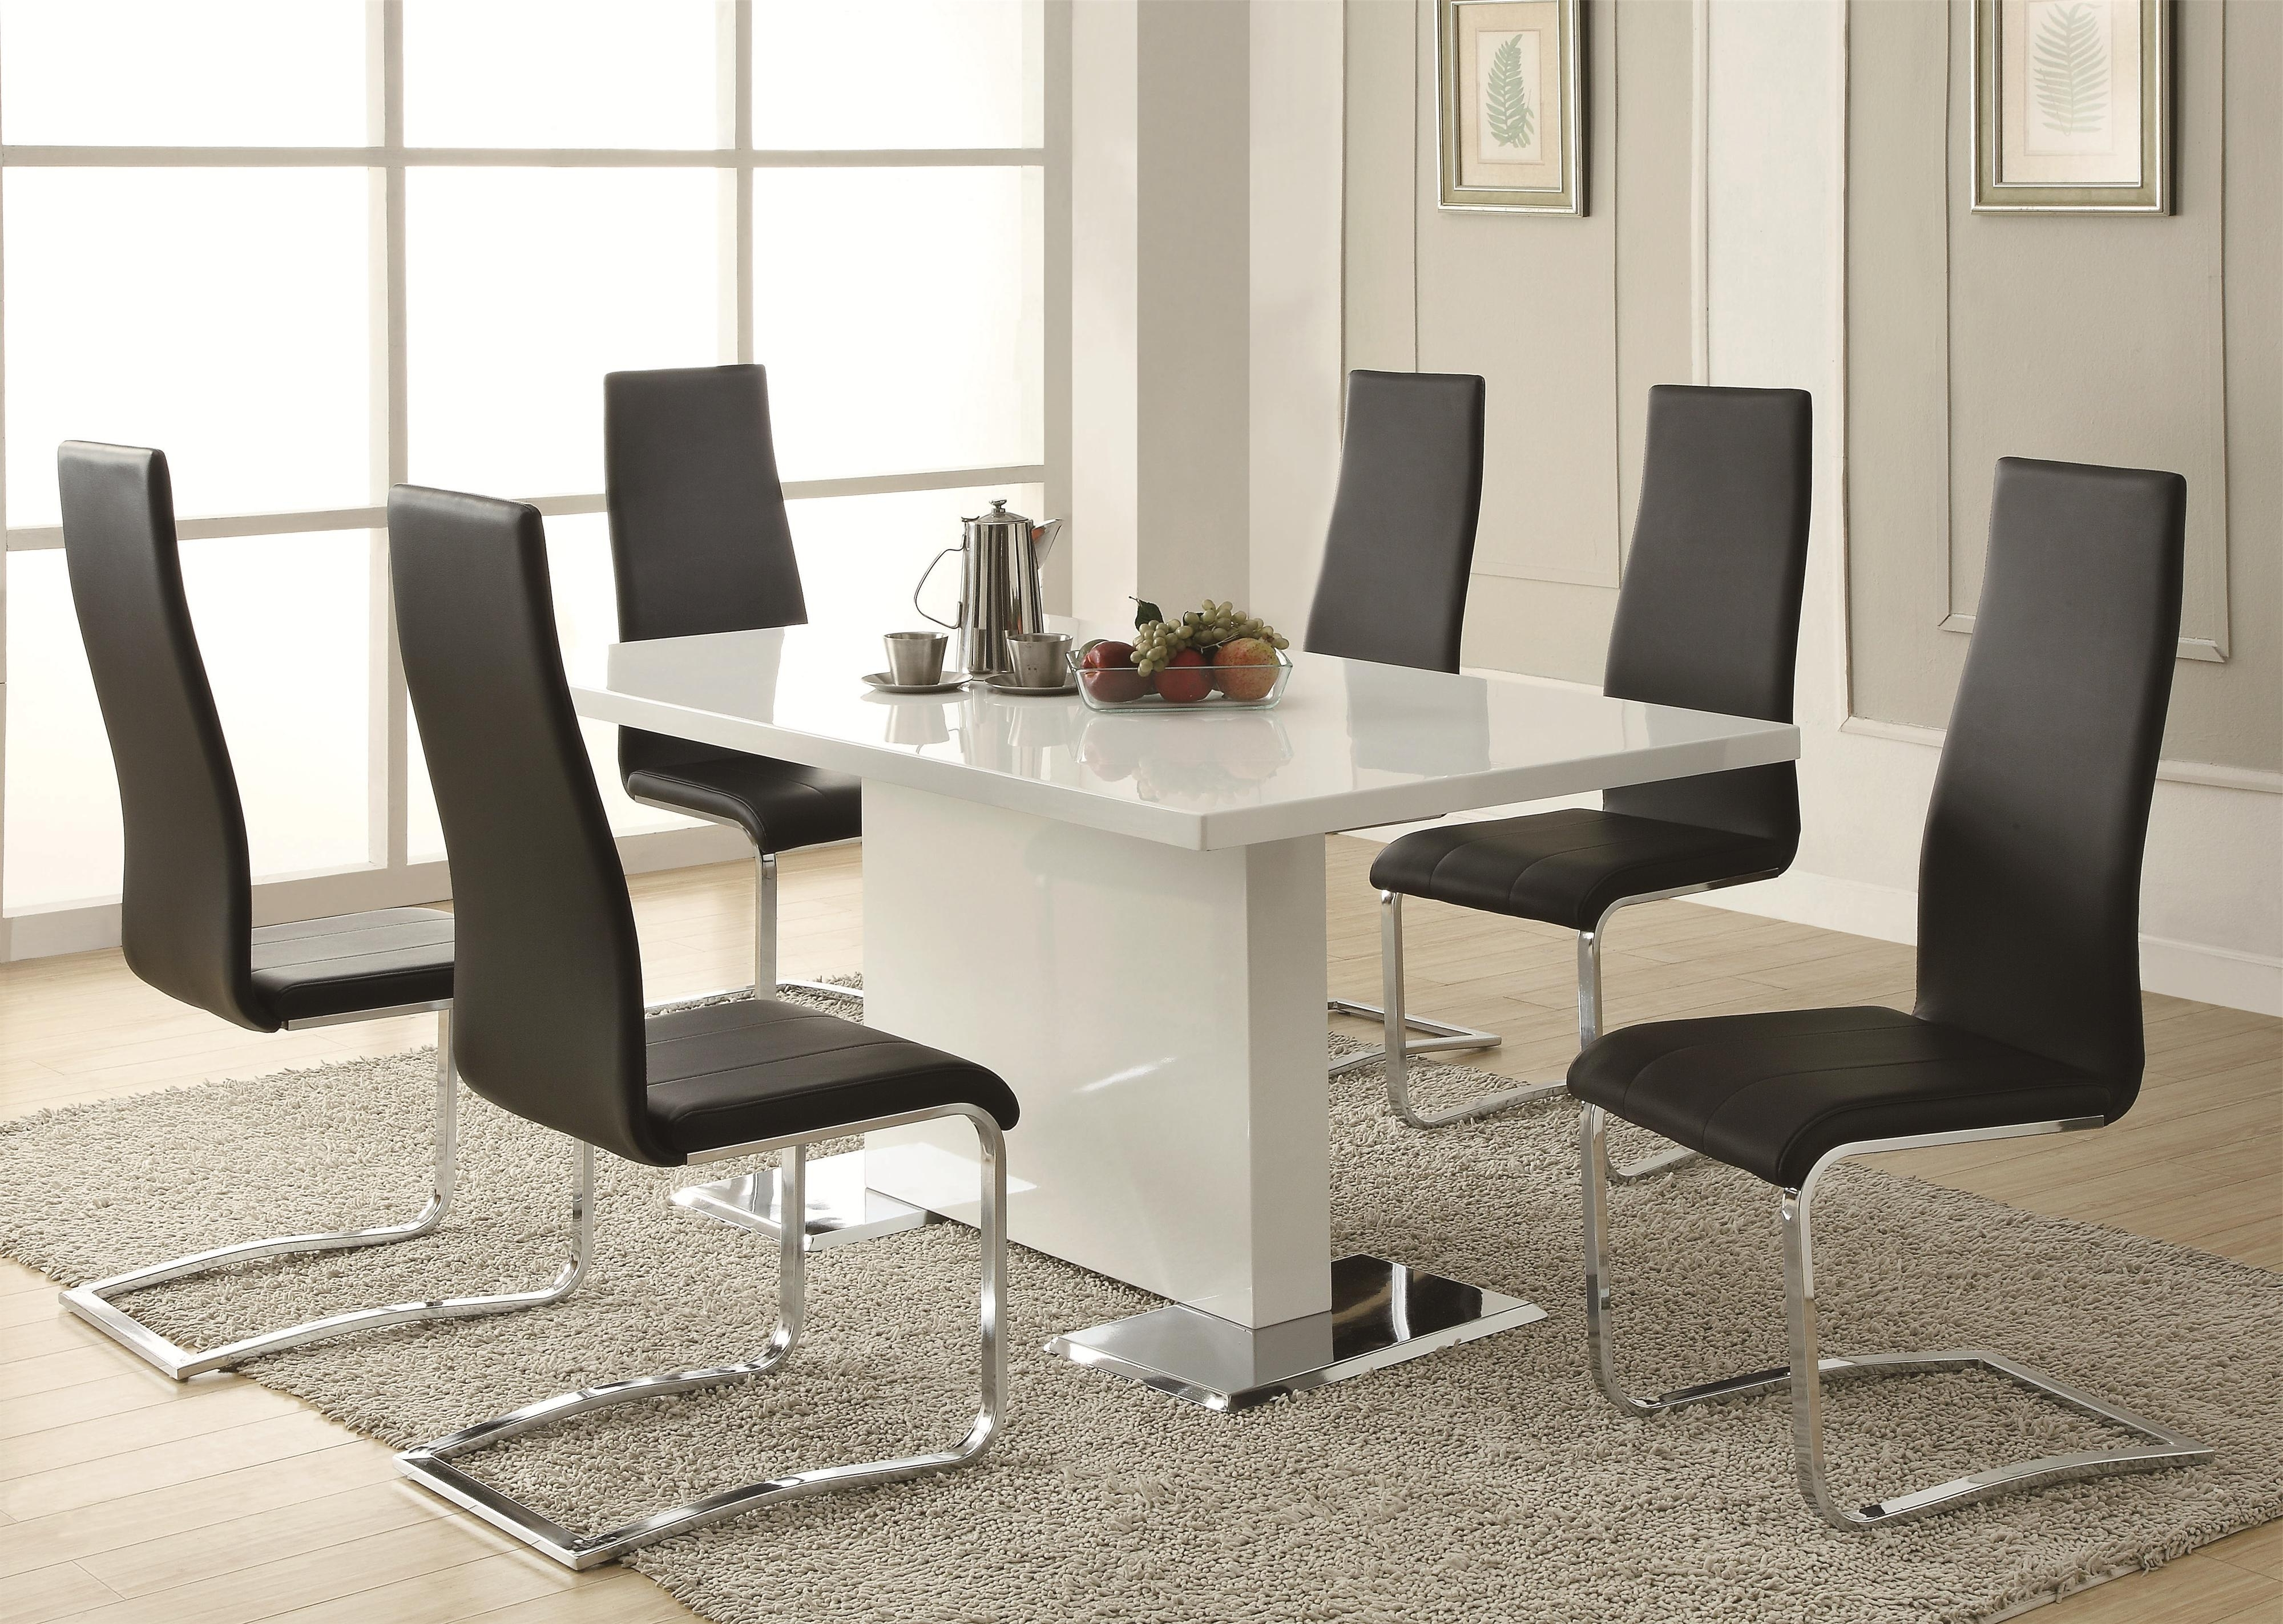 Modern Dining Tables And Chairs For Most Up To Date Coaster Modern Dining 7 Piece White Table & Black Upholstered Chairs (View 2 of 25)